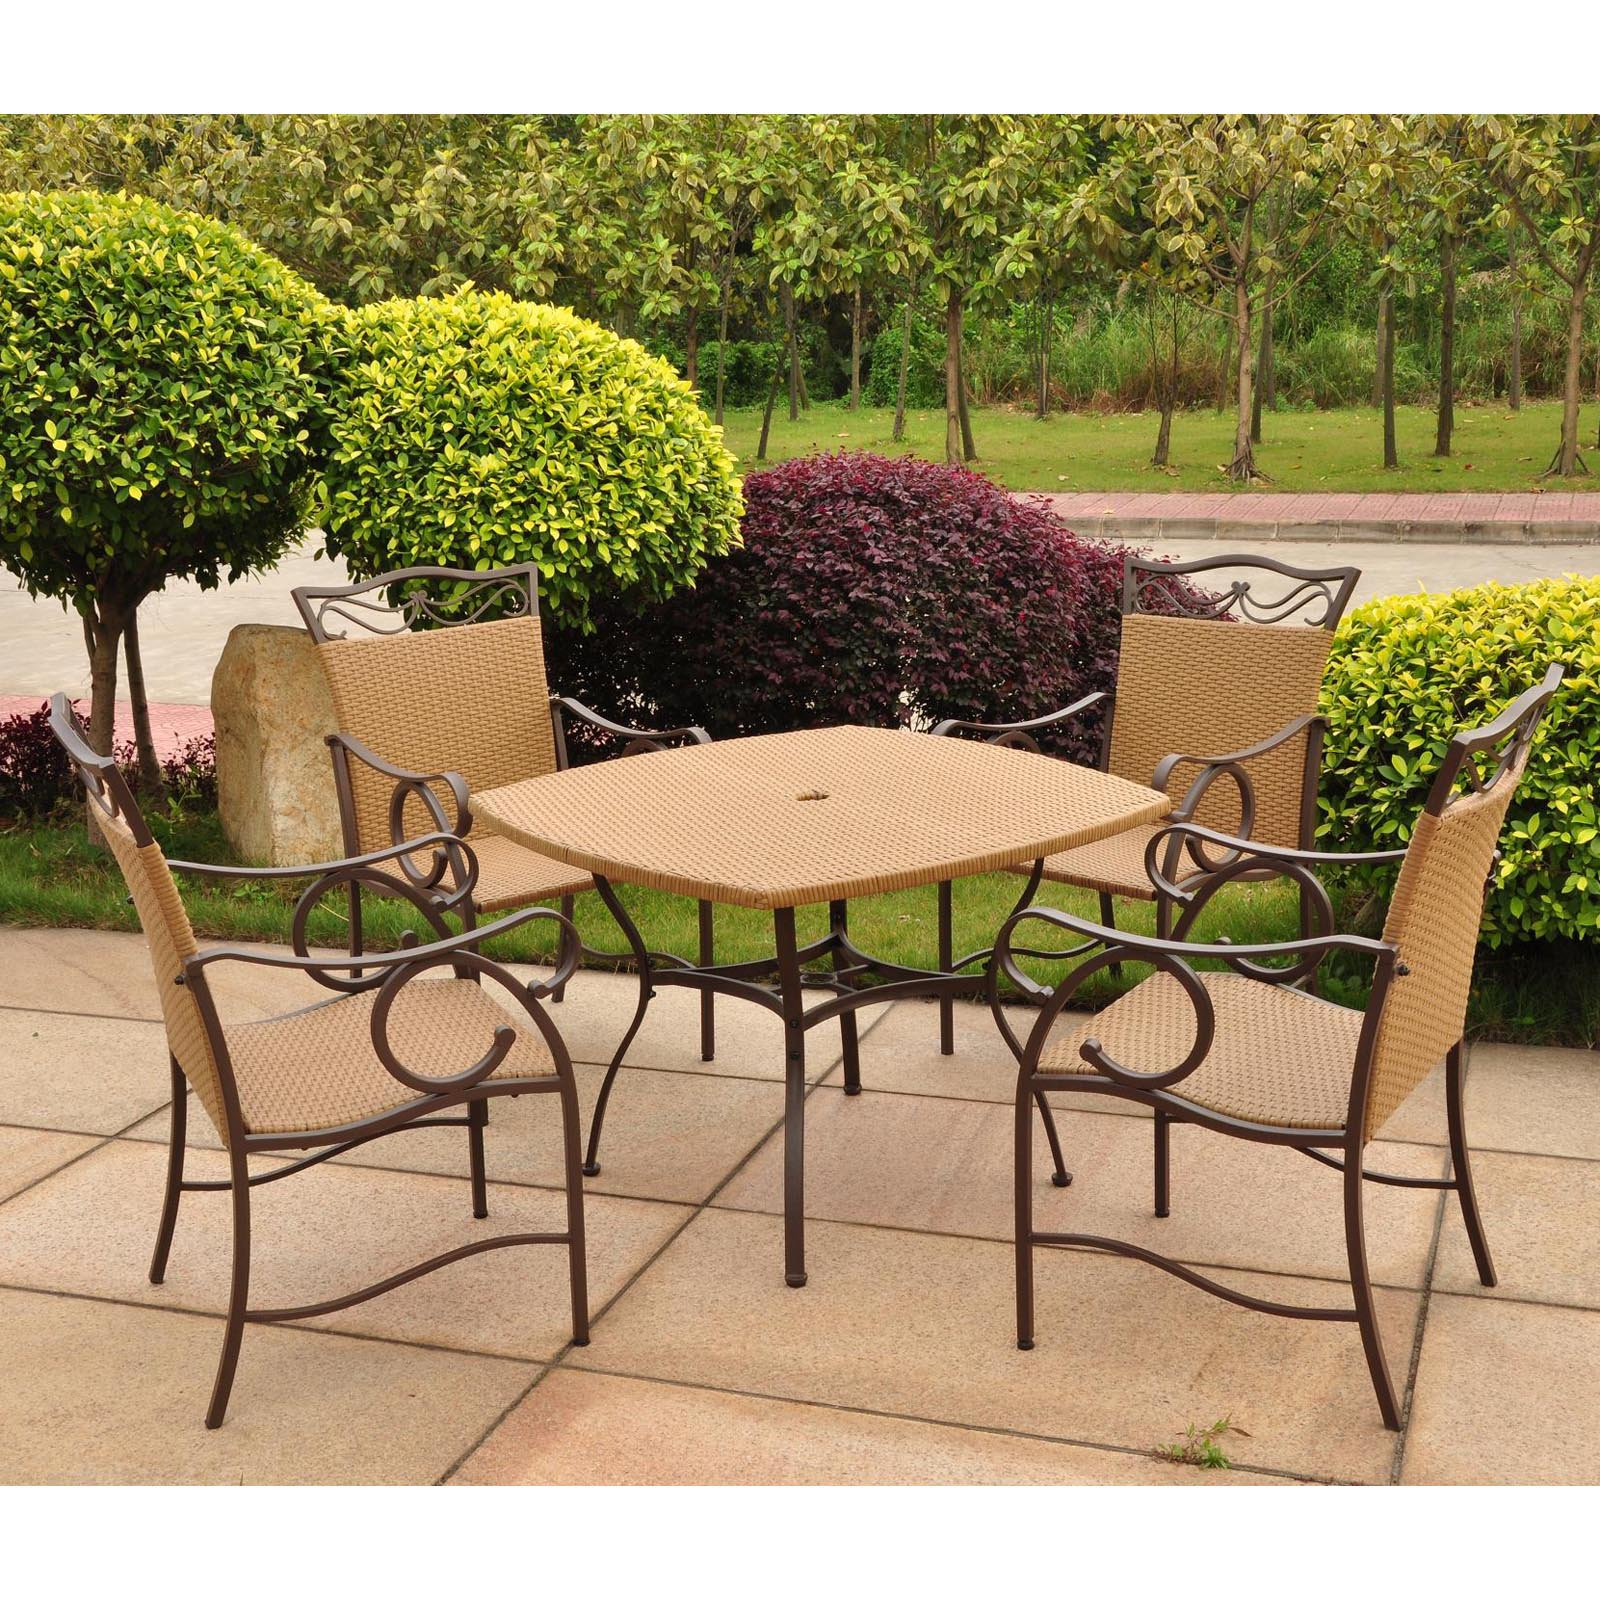 International Caravan Valencia 5 pc. Wicker Resin Patio Set